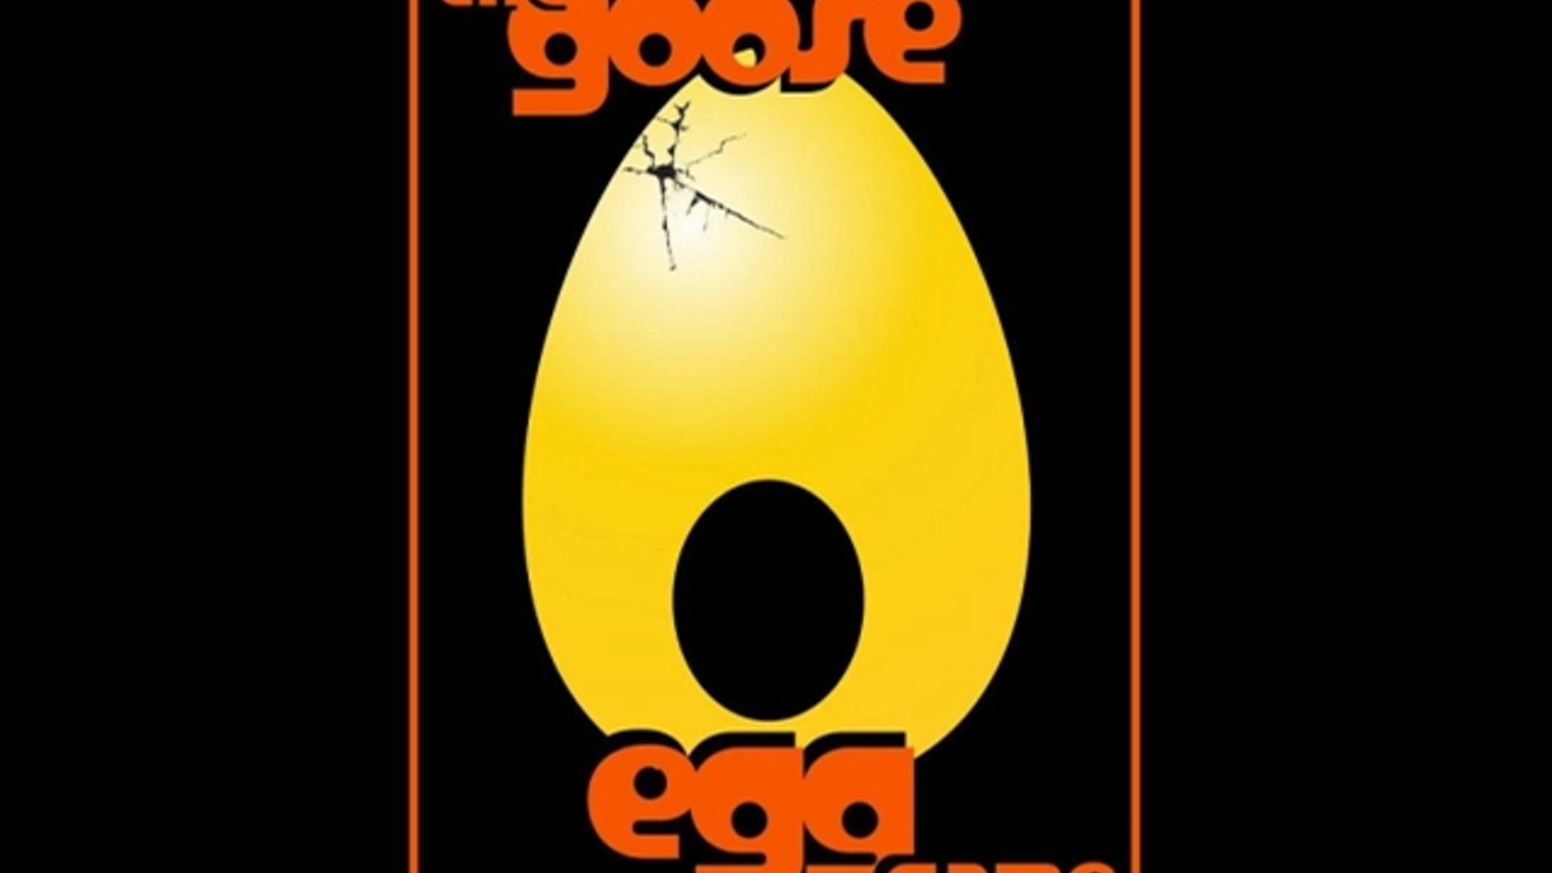 The Goose Egg Game: Let's Hatch Some Fun! by Happy Android Ideas